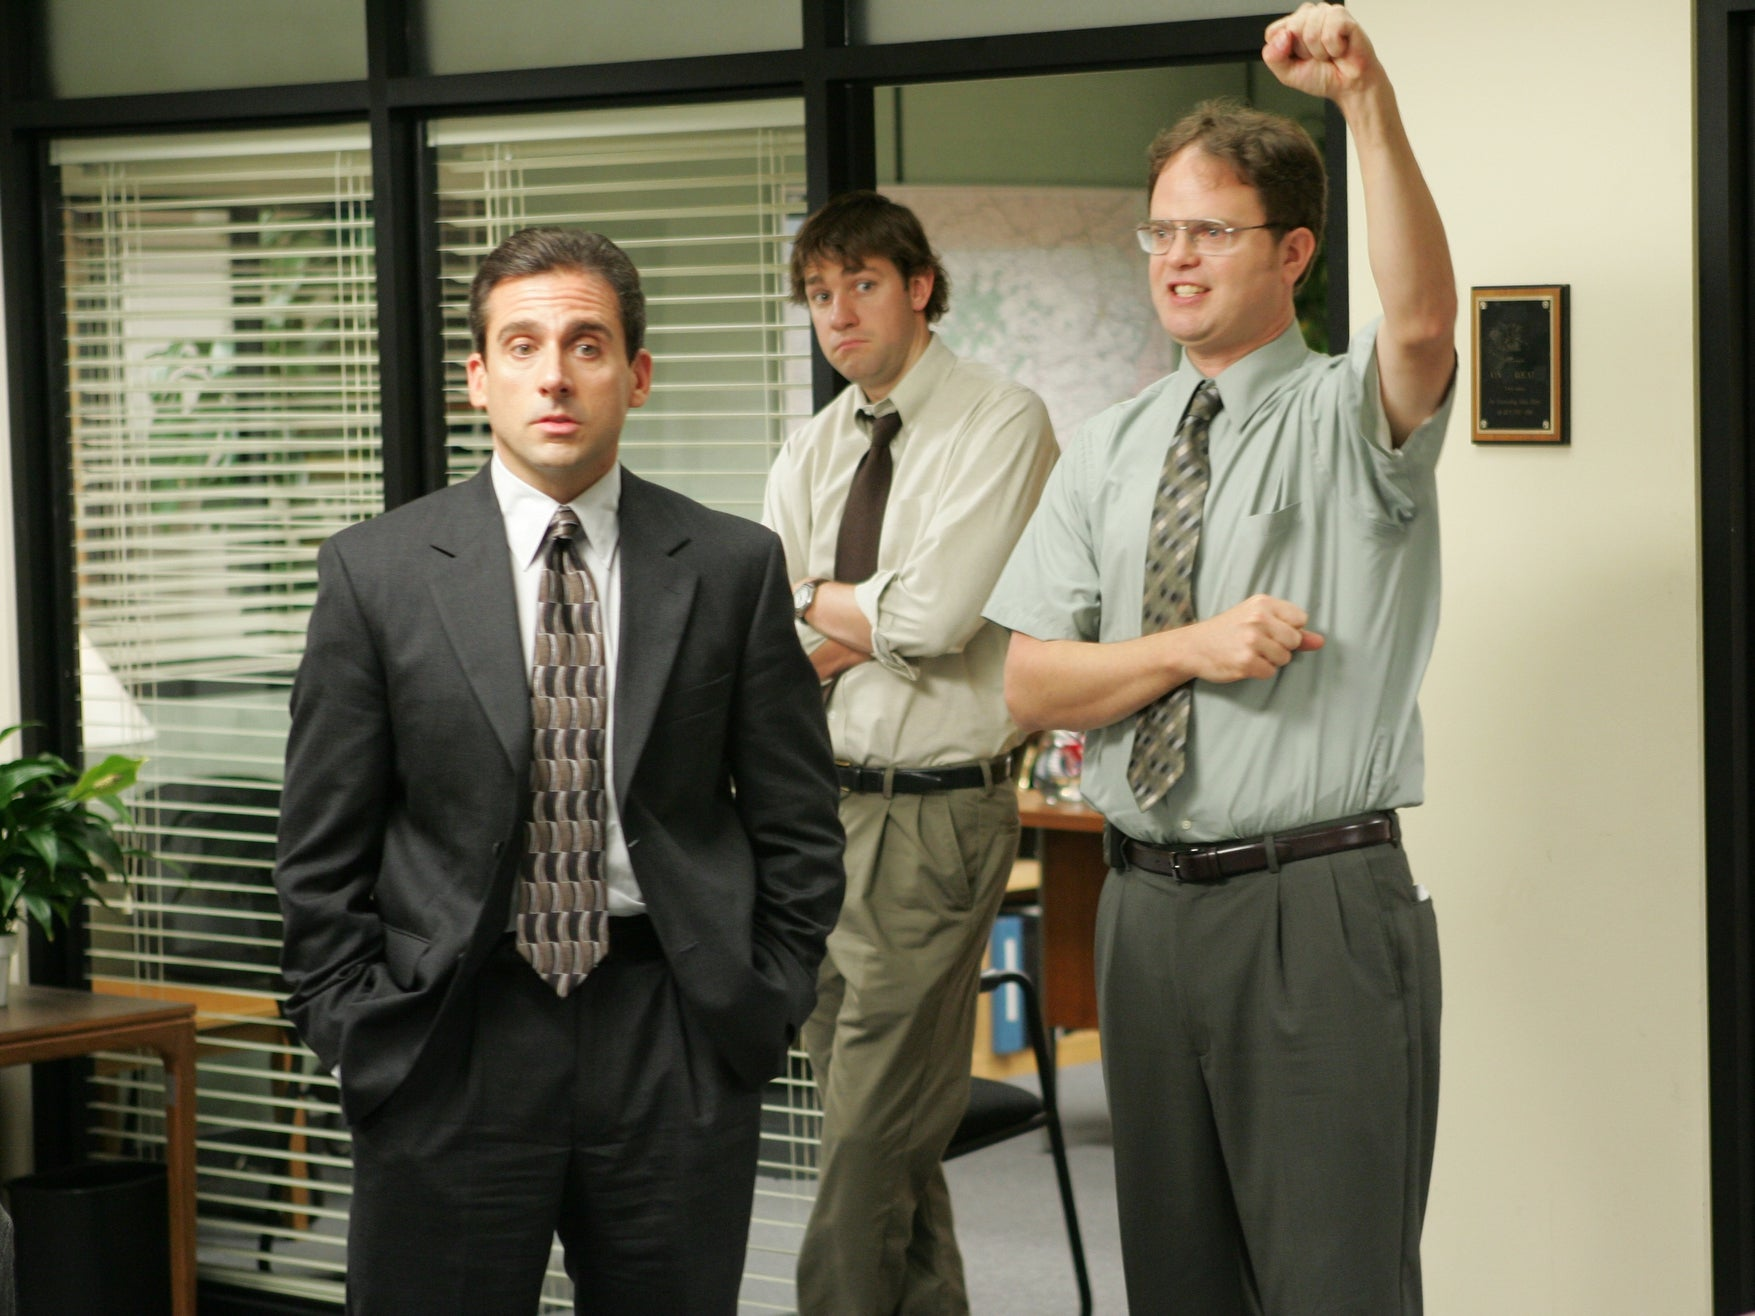 The Office US finale originally featured a Matrix parody